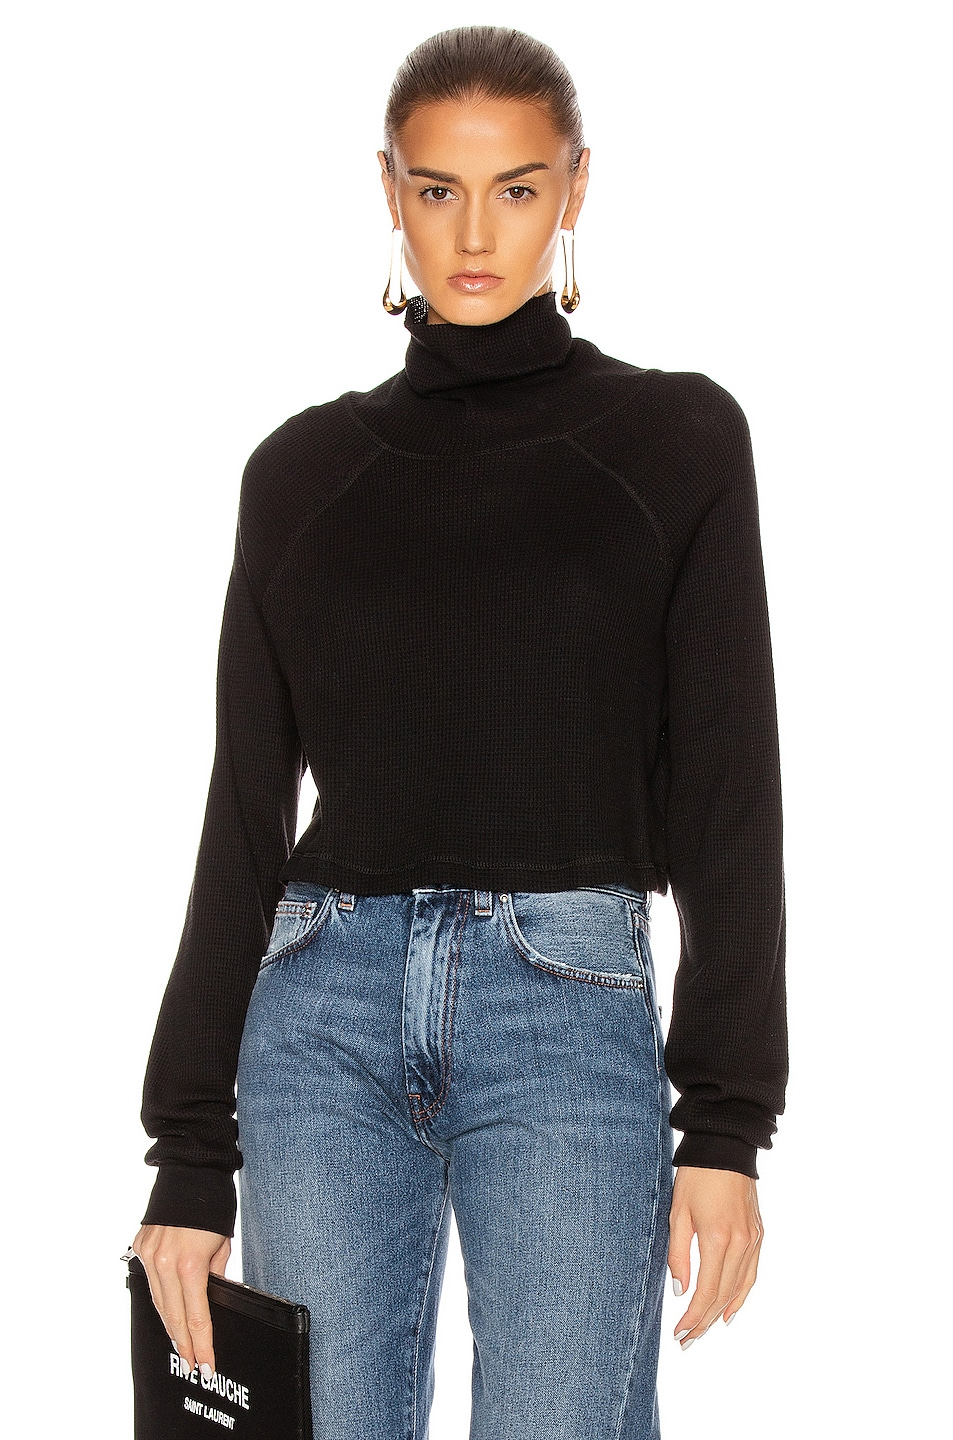 Image 1 of The Range Stark Waffle Knit Cropped Turtleneck in Jet Black